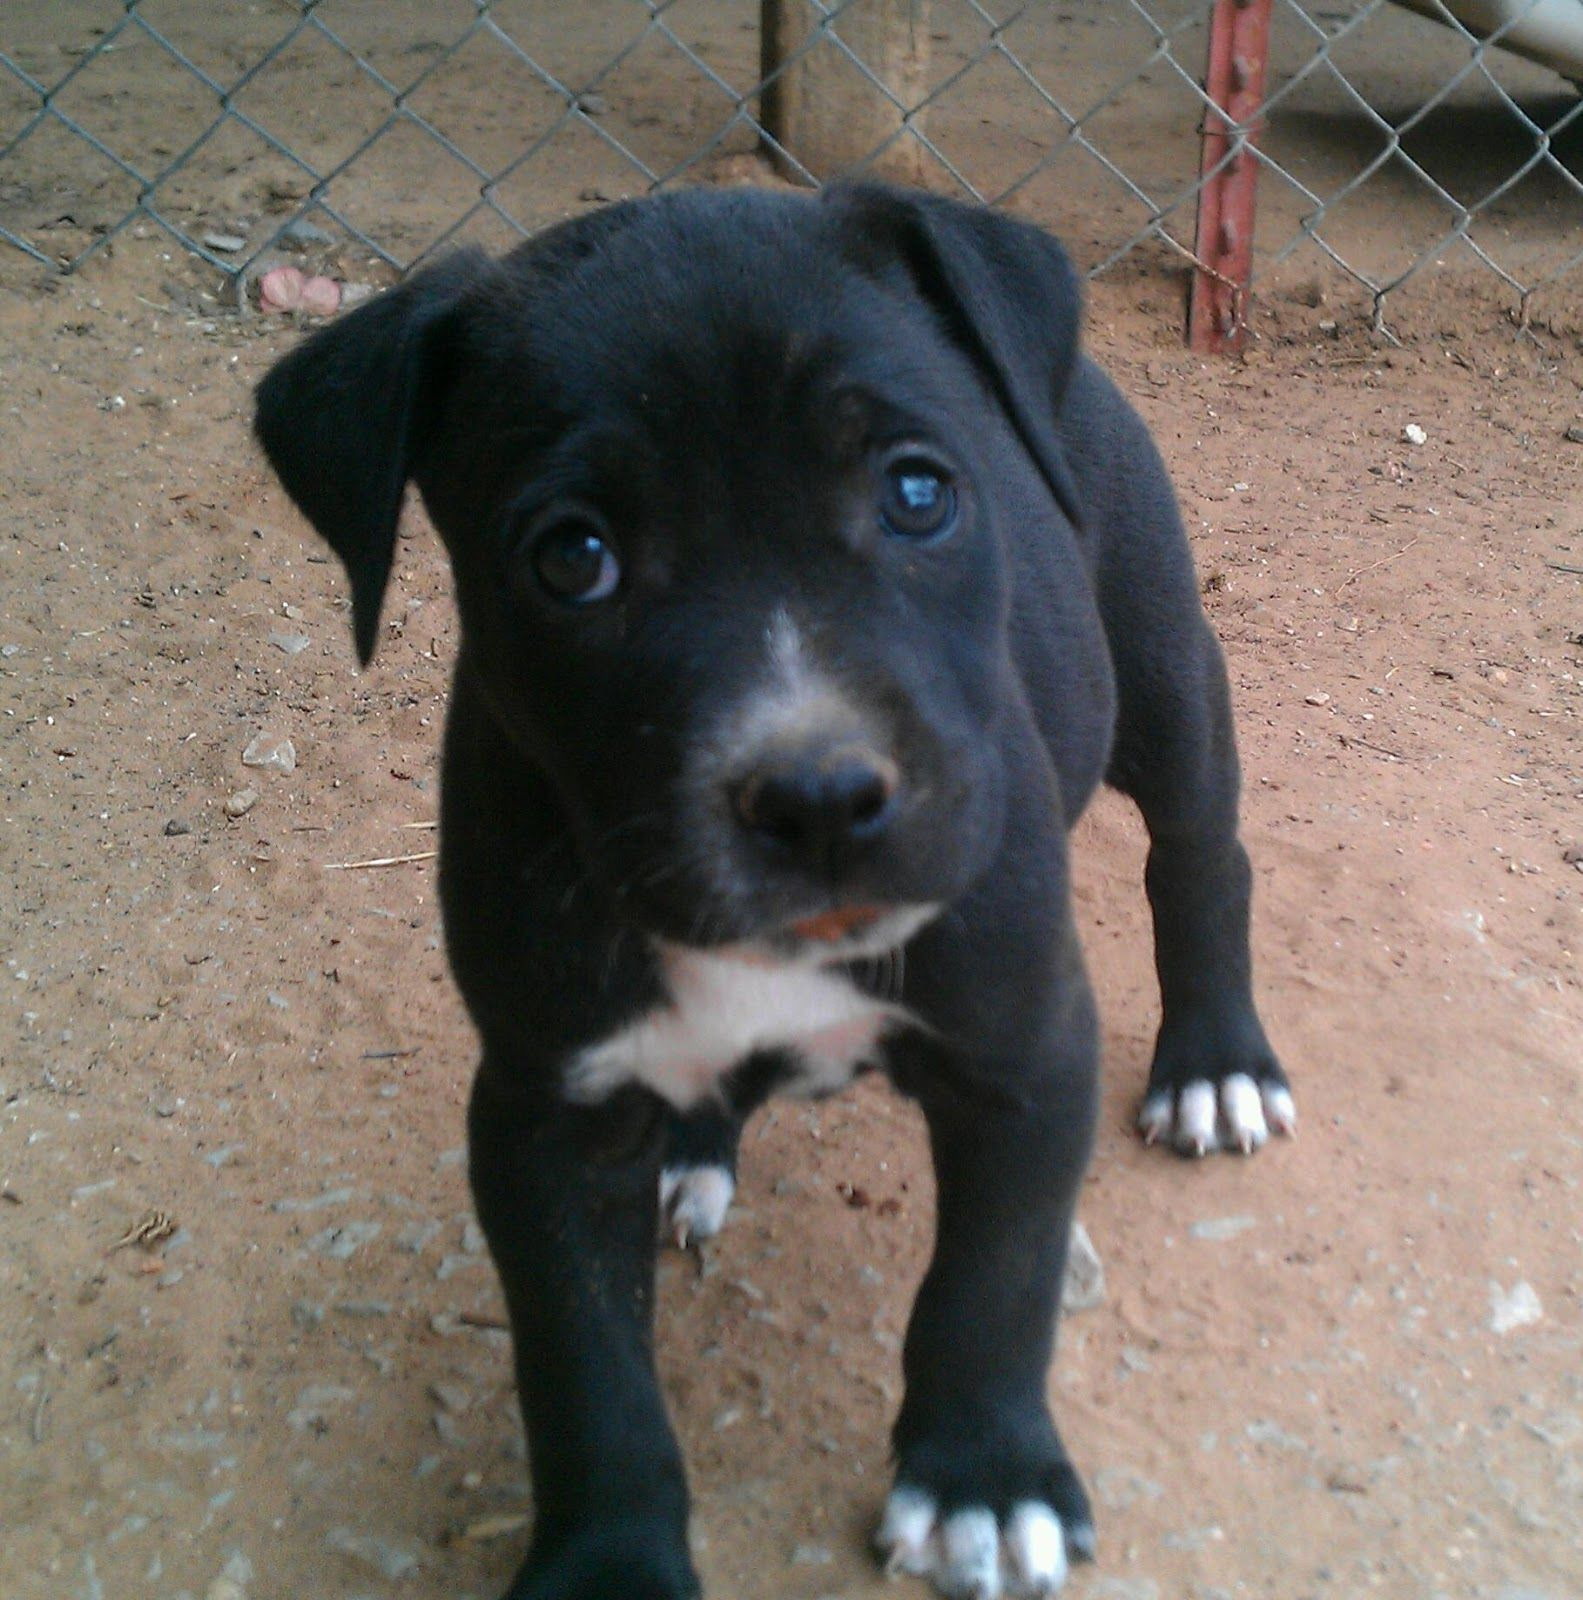 Baby Pitbulls Black And White Wrfrhv Pitbull Puppies Black Pitbull Puppies Black Pitbull